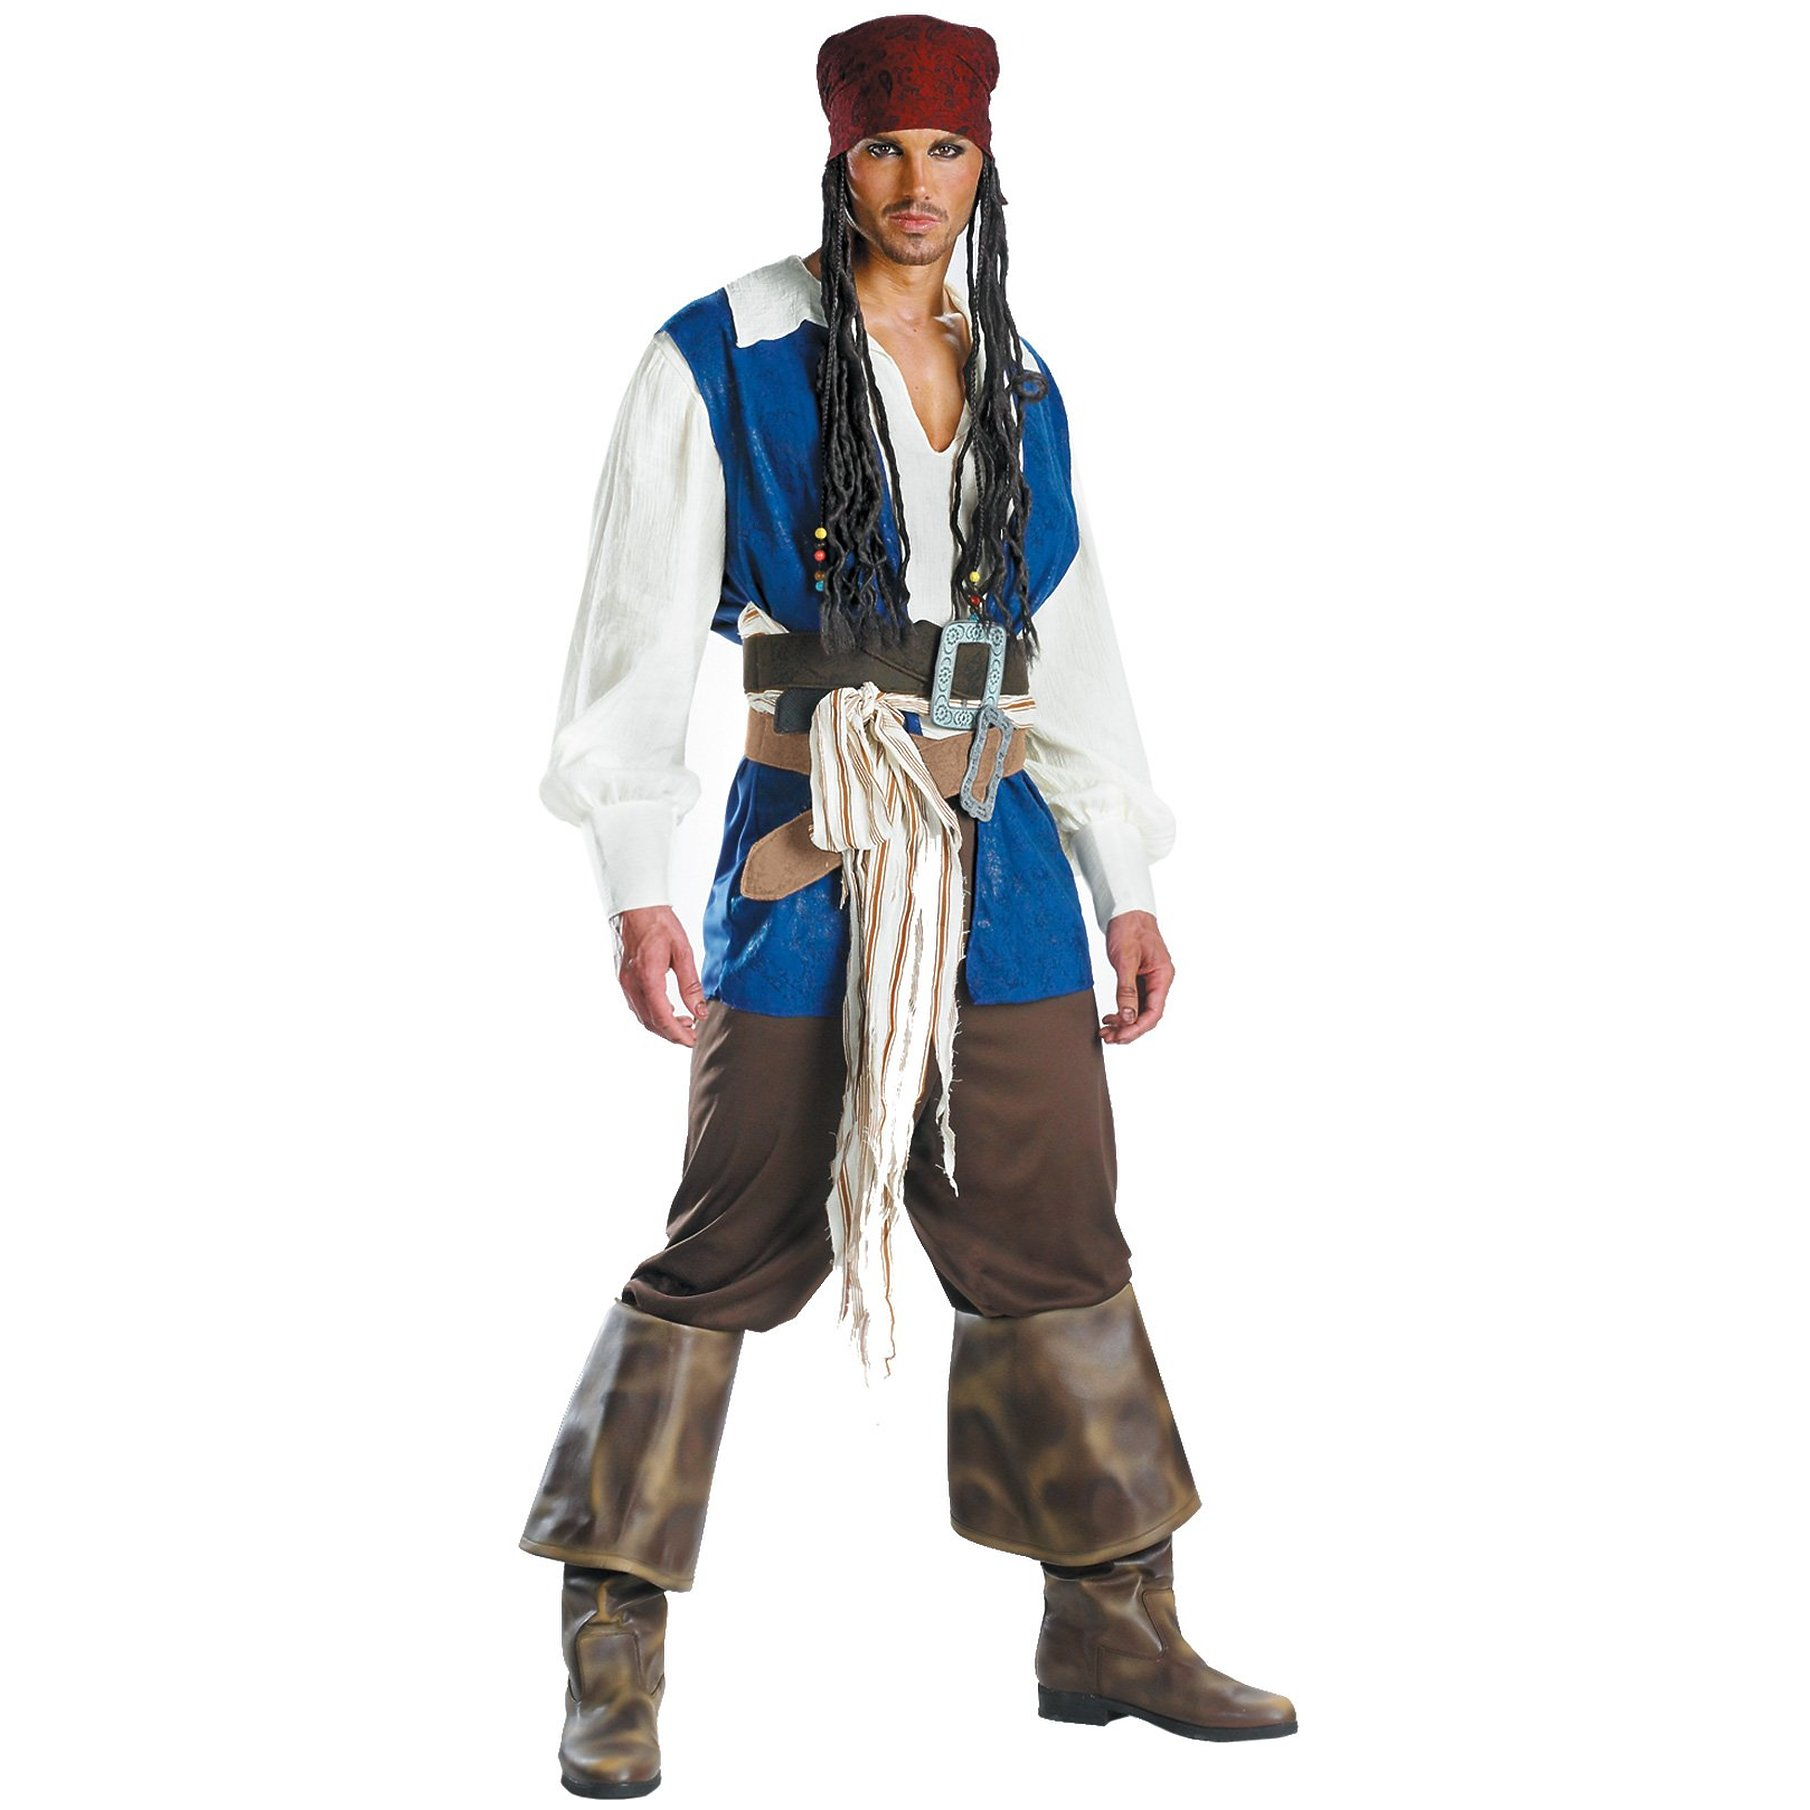 Captain Jack Sparrow Quality Costume As Shown Men 42-46 5101-DISG-I